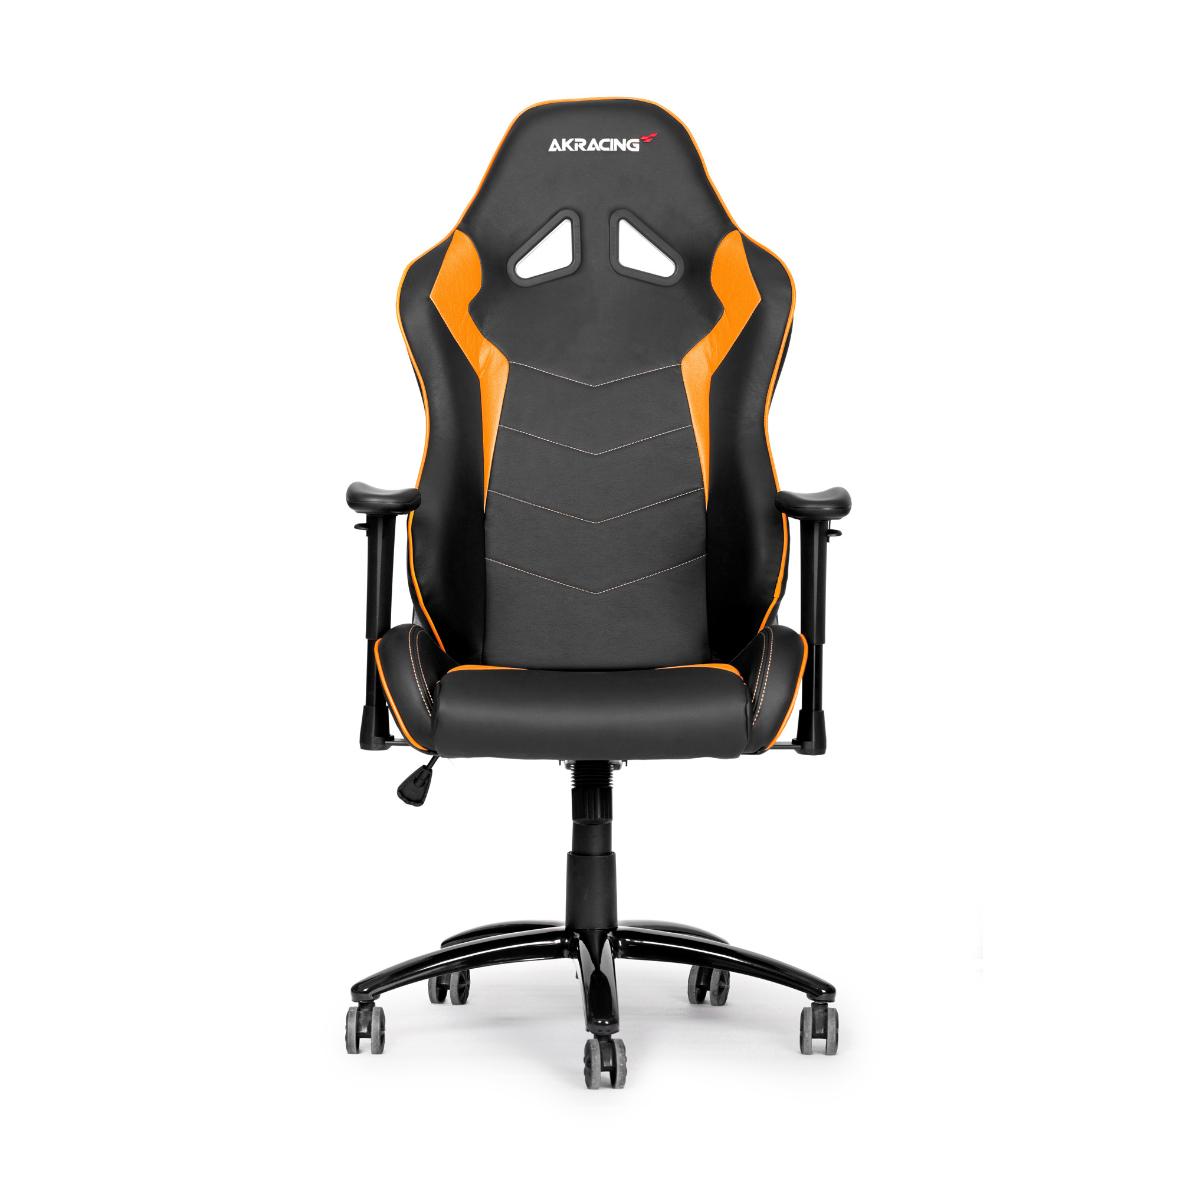 gaming chair reviews 2016 uk swing briscoes akracing octane review invision game community